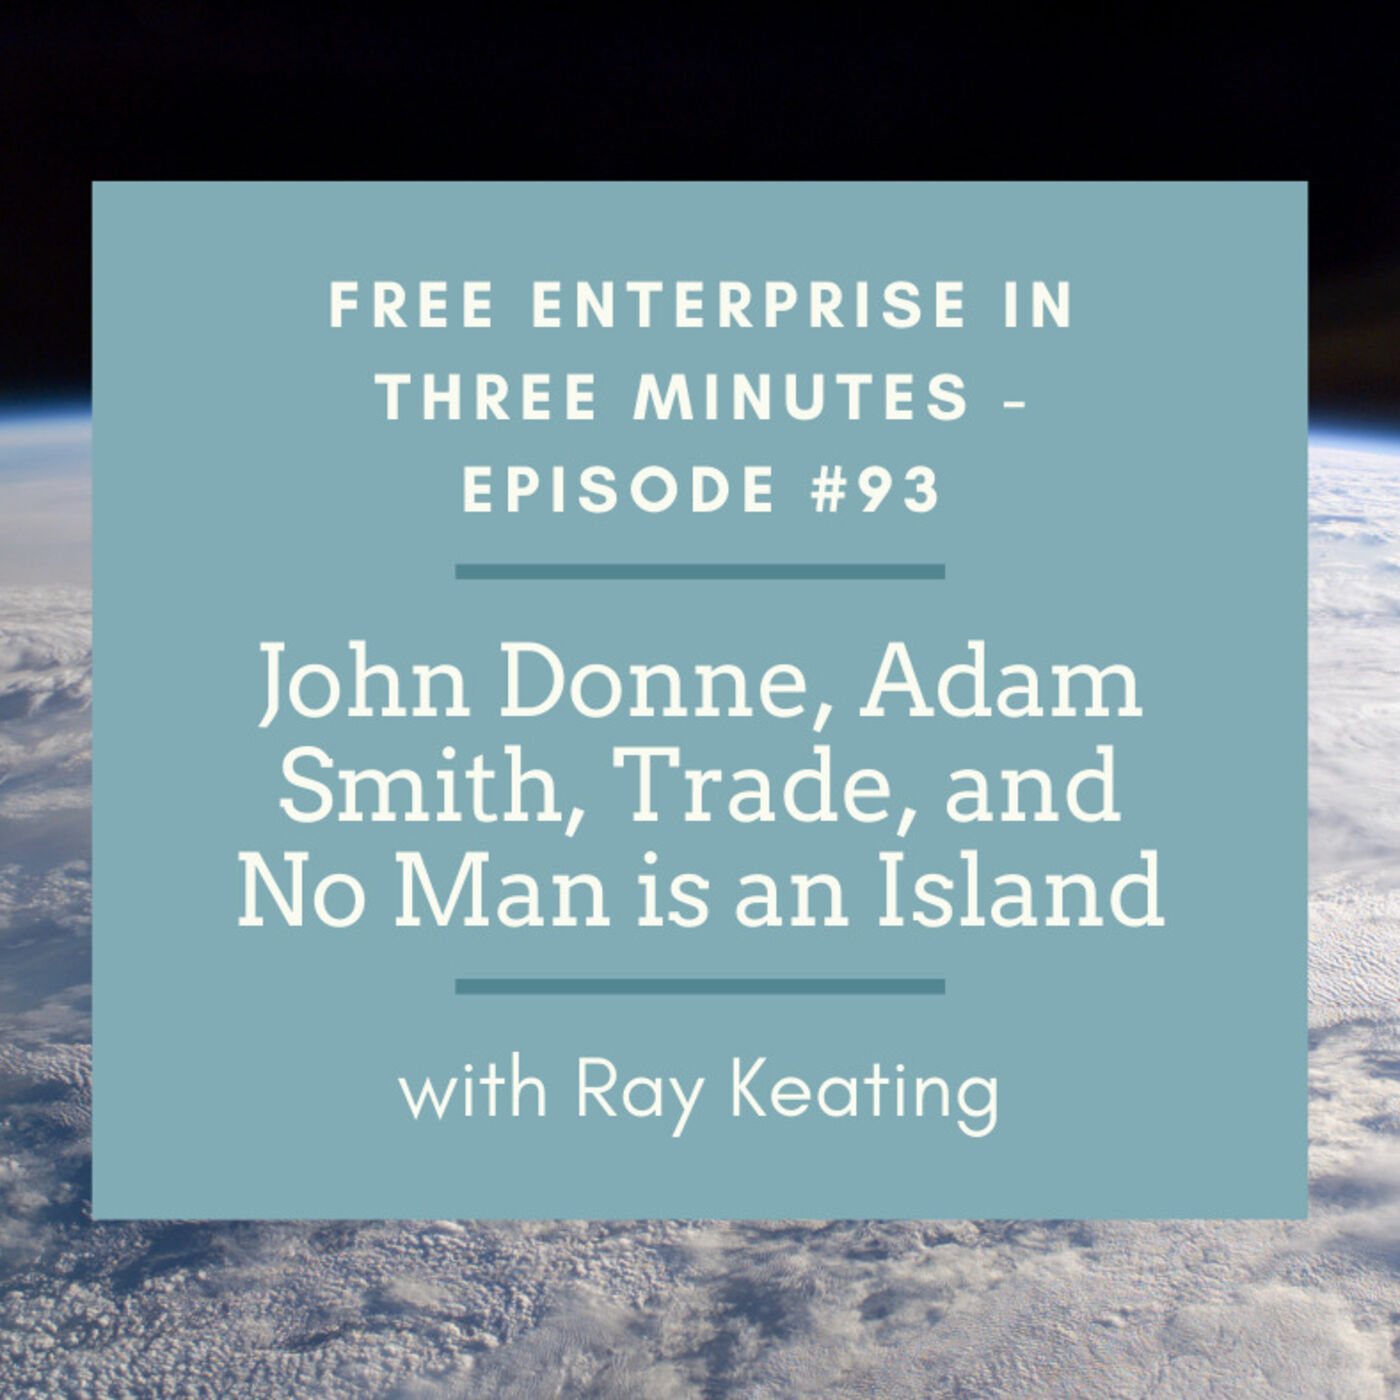 Episode #93: John Donne, Adam Smith, Trade, and No Man is an Island